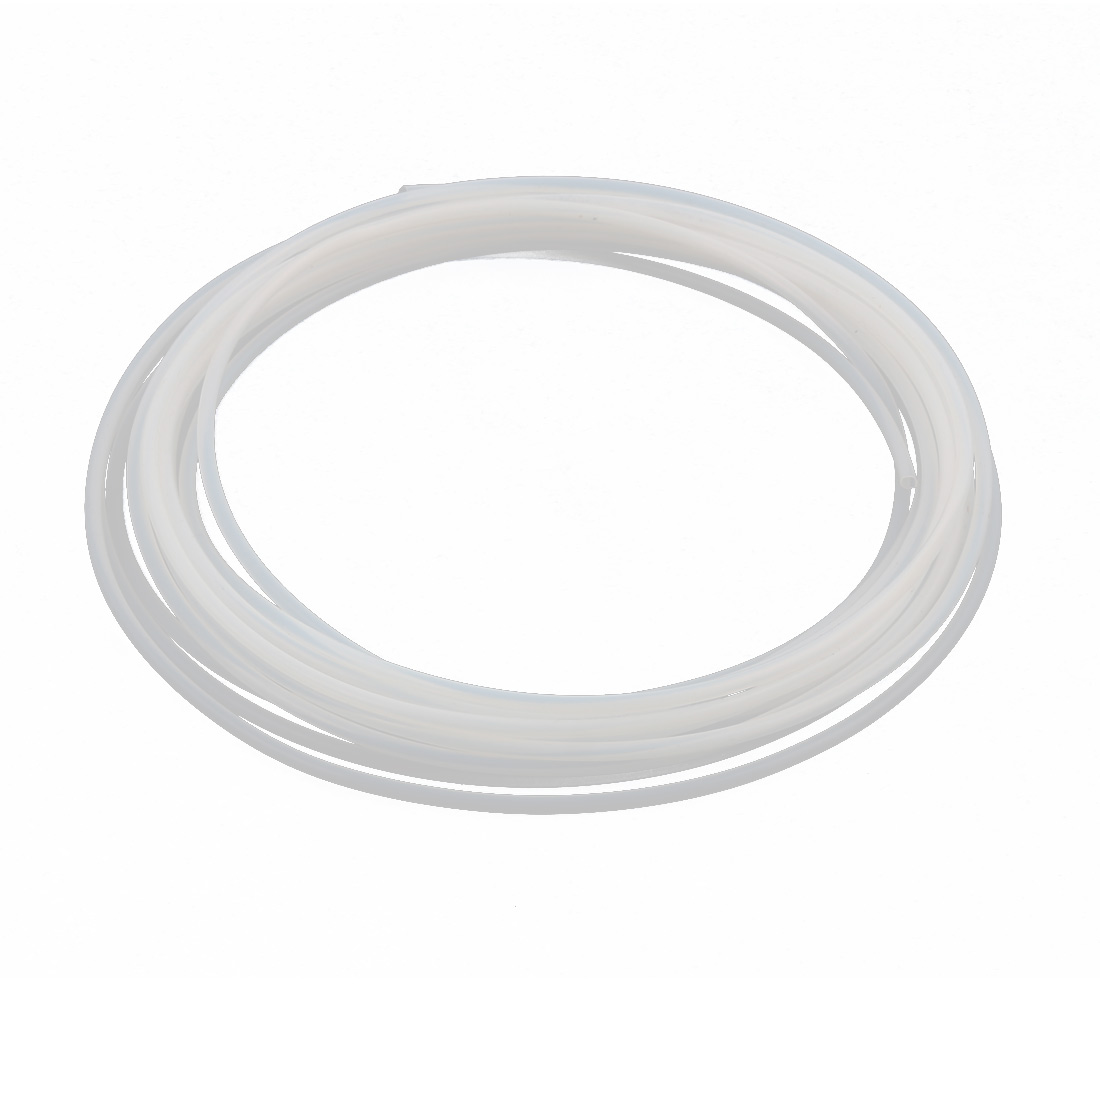 2.41mmx2.81mm PTFE Resistant High Temperature Transparent Tubing 5Meters 16.4Ft